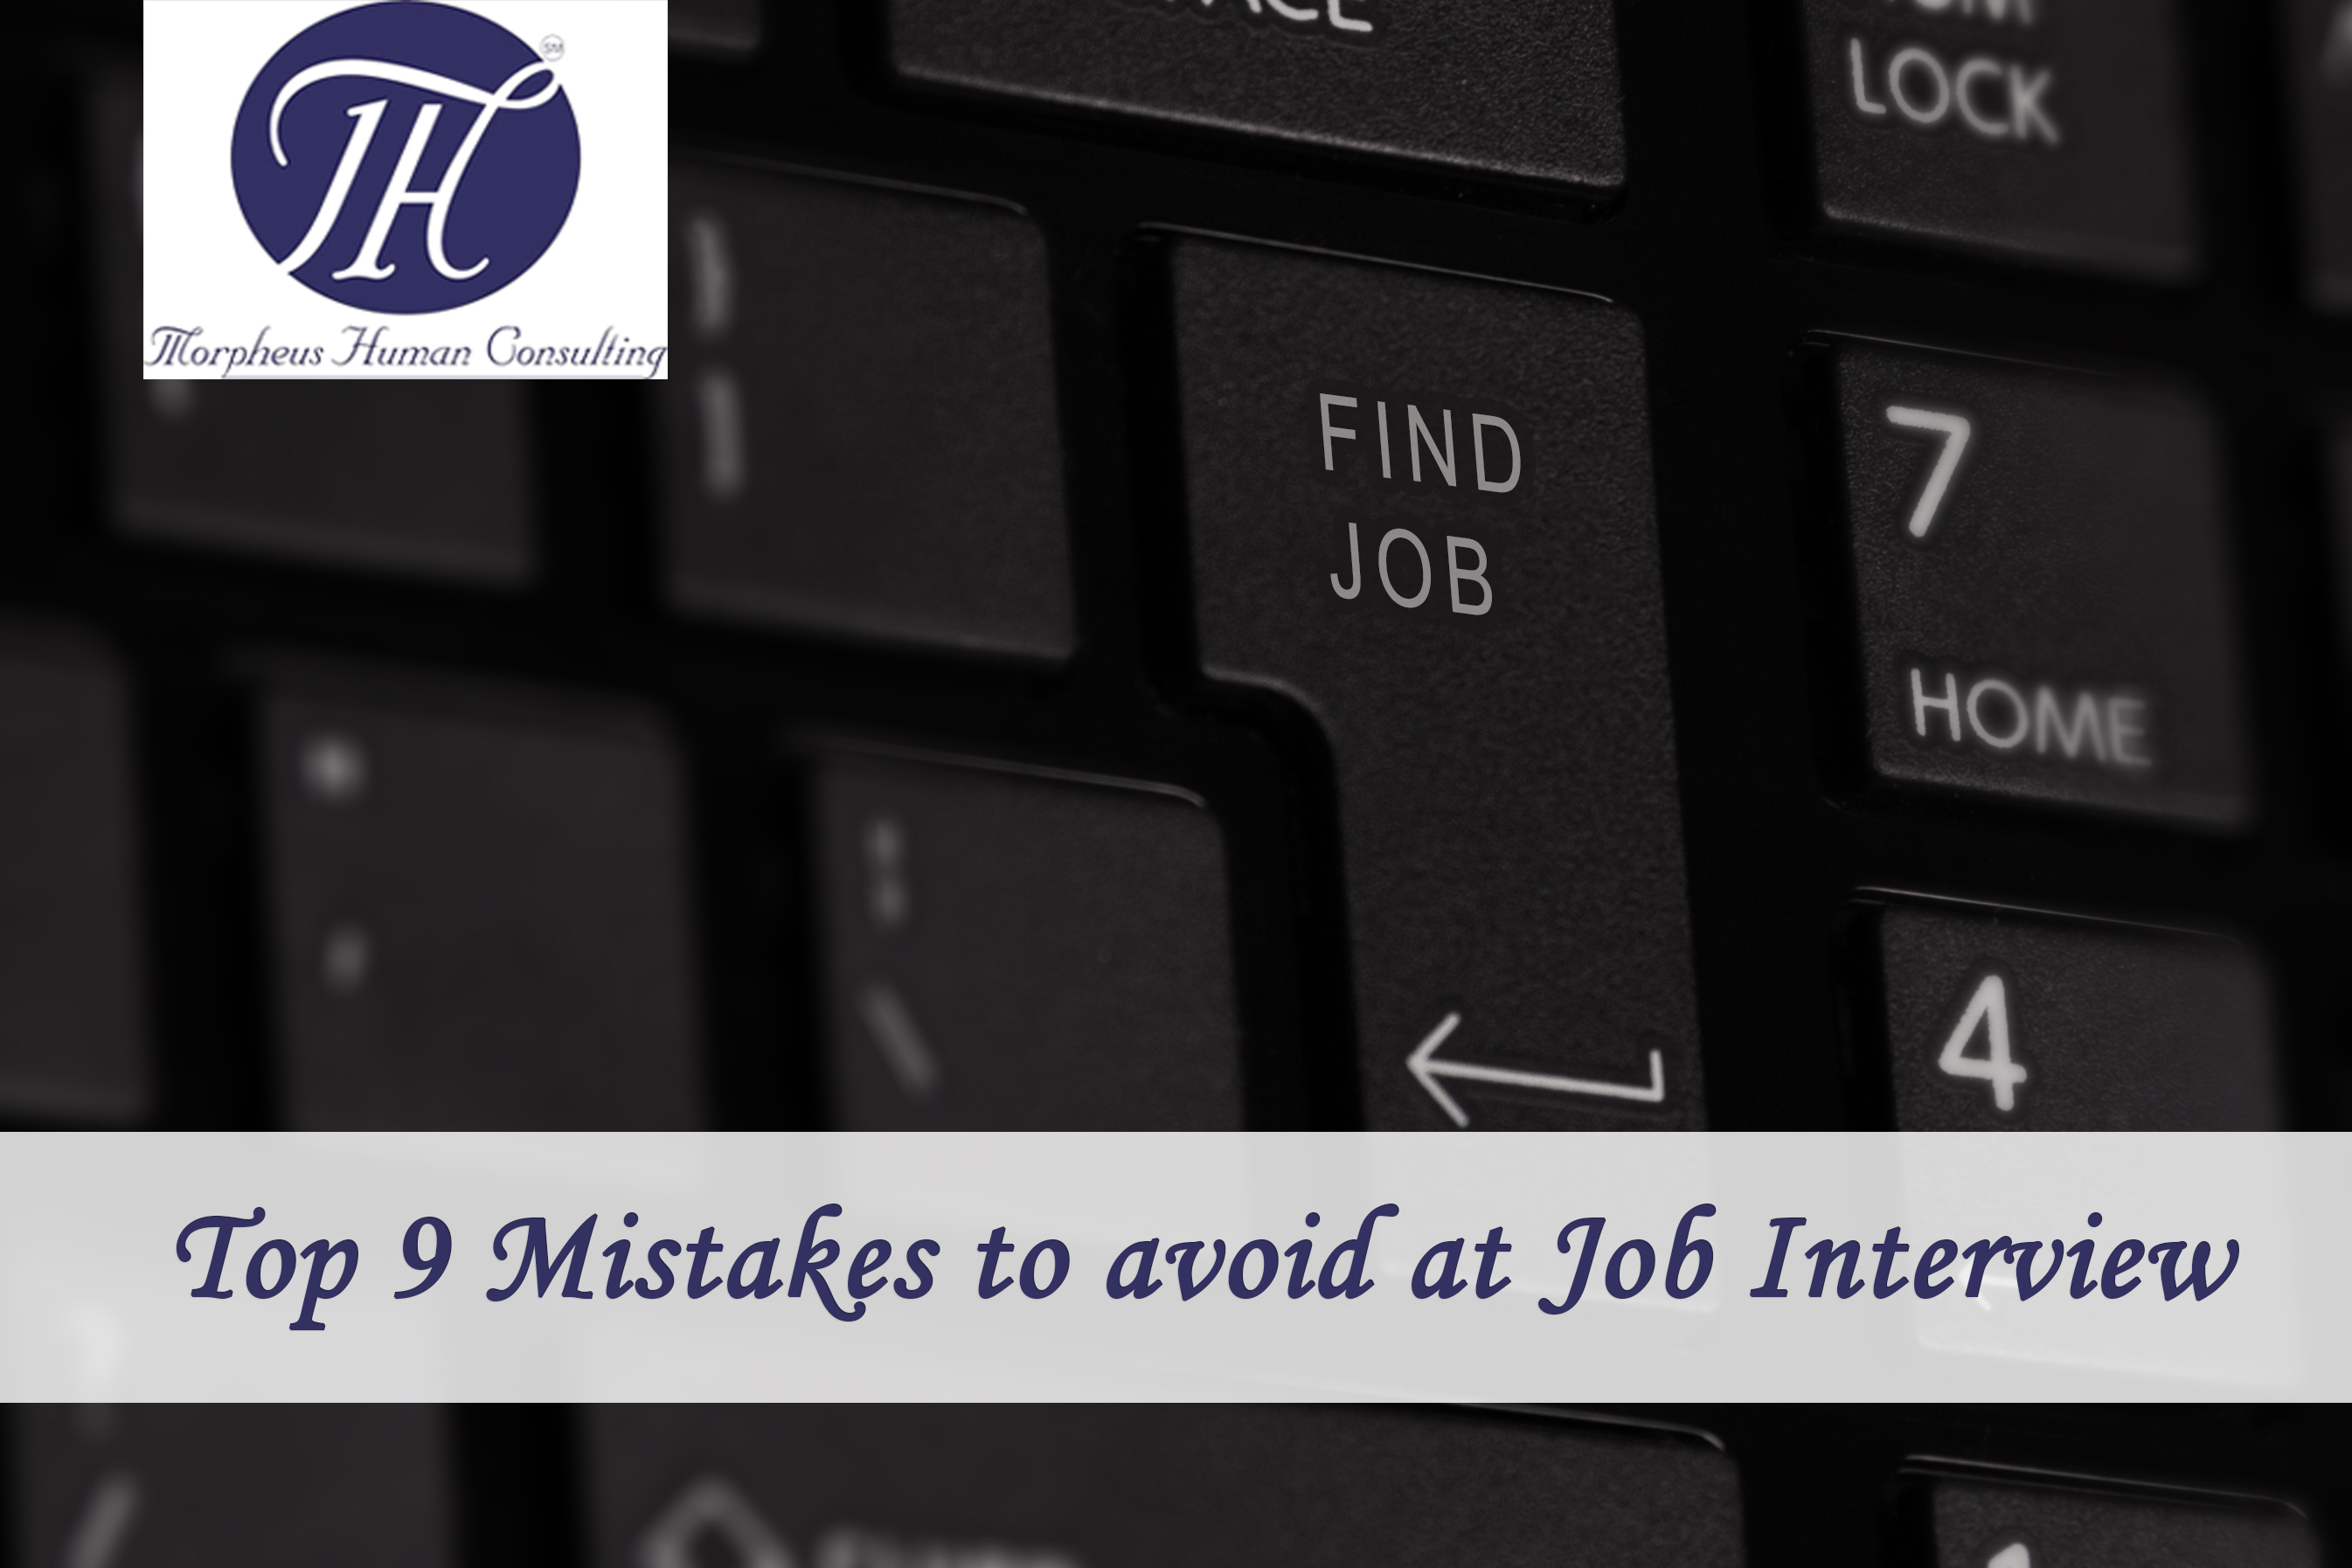 Top 9 Mistakes to avoid at Job Interview